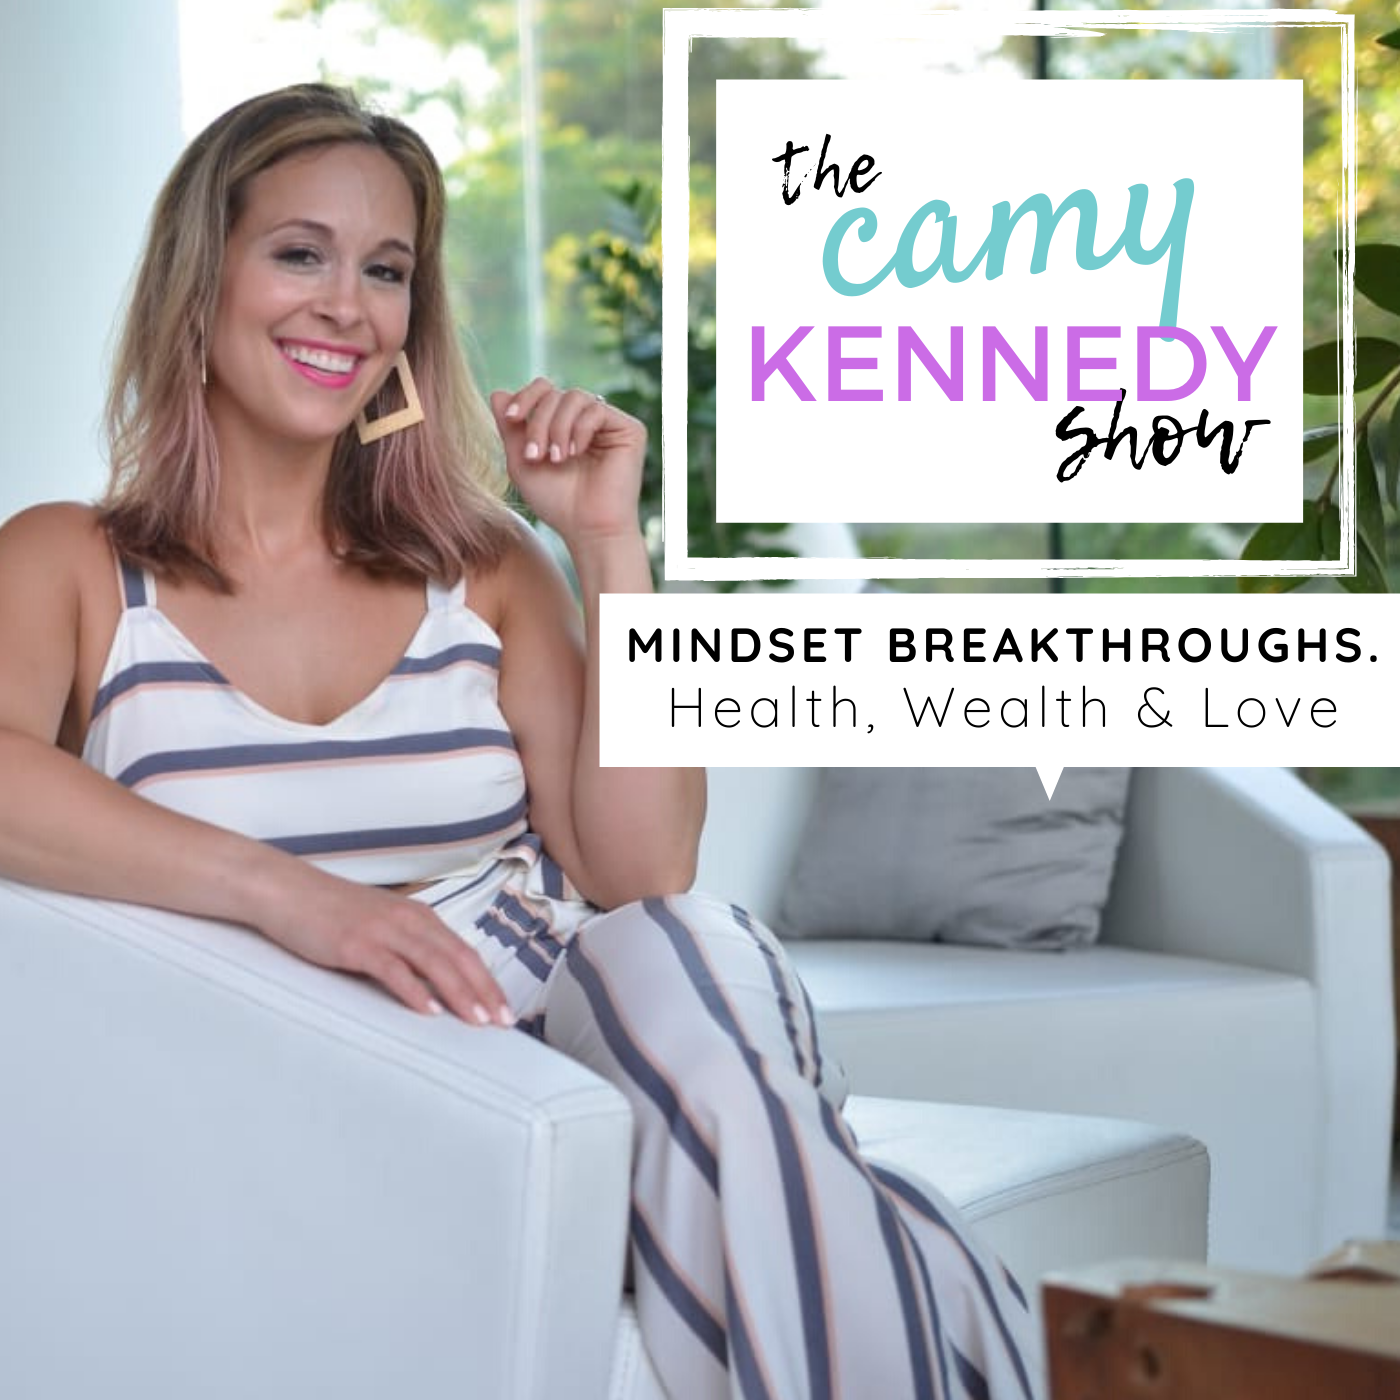 Camy Kennedy Show   Mindset Breakthroughs in Health, Wealth & Love